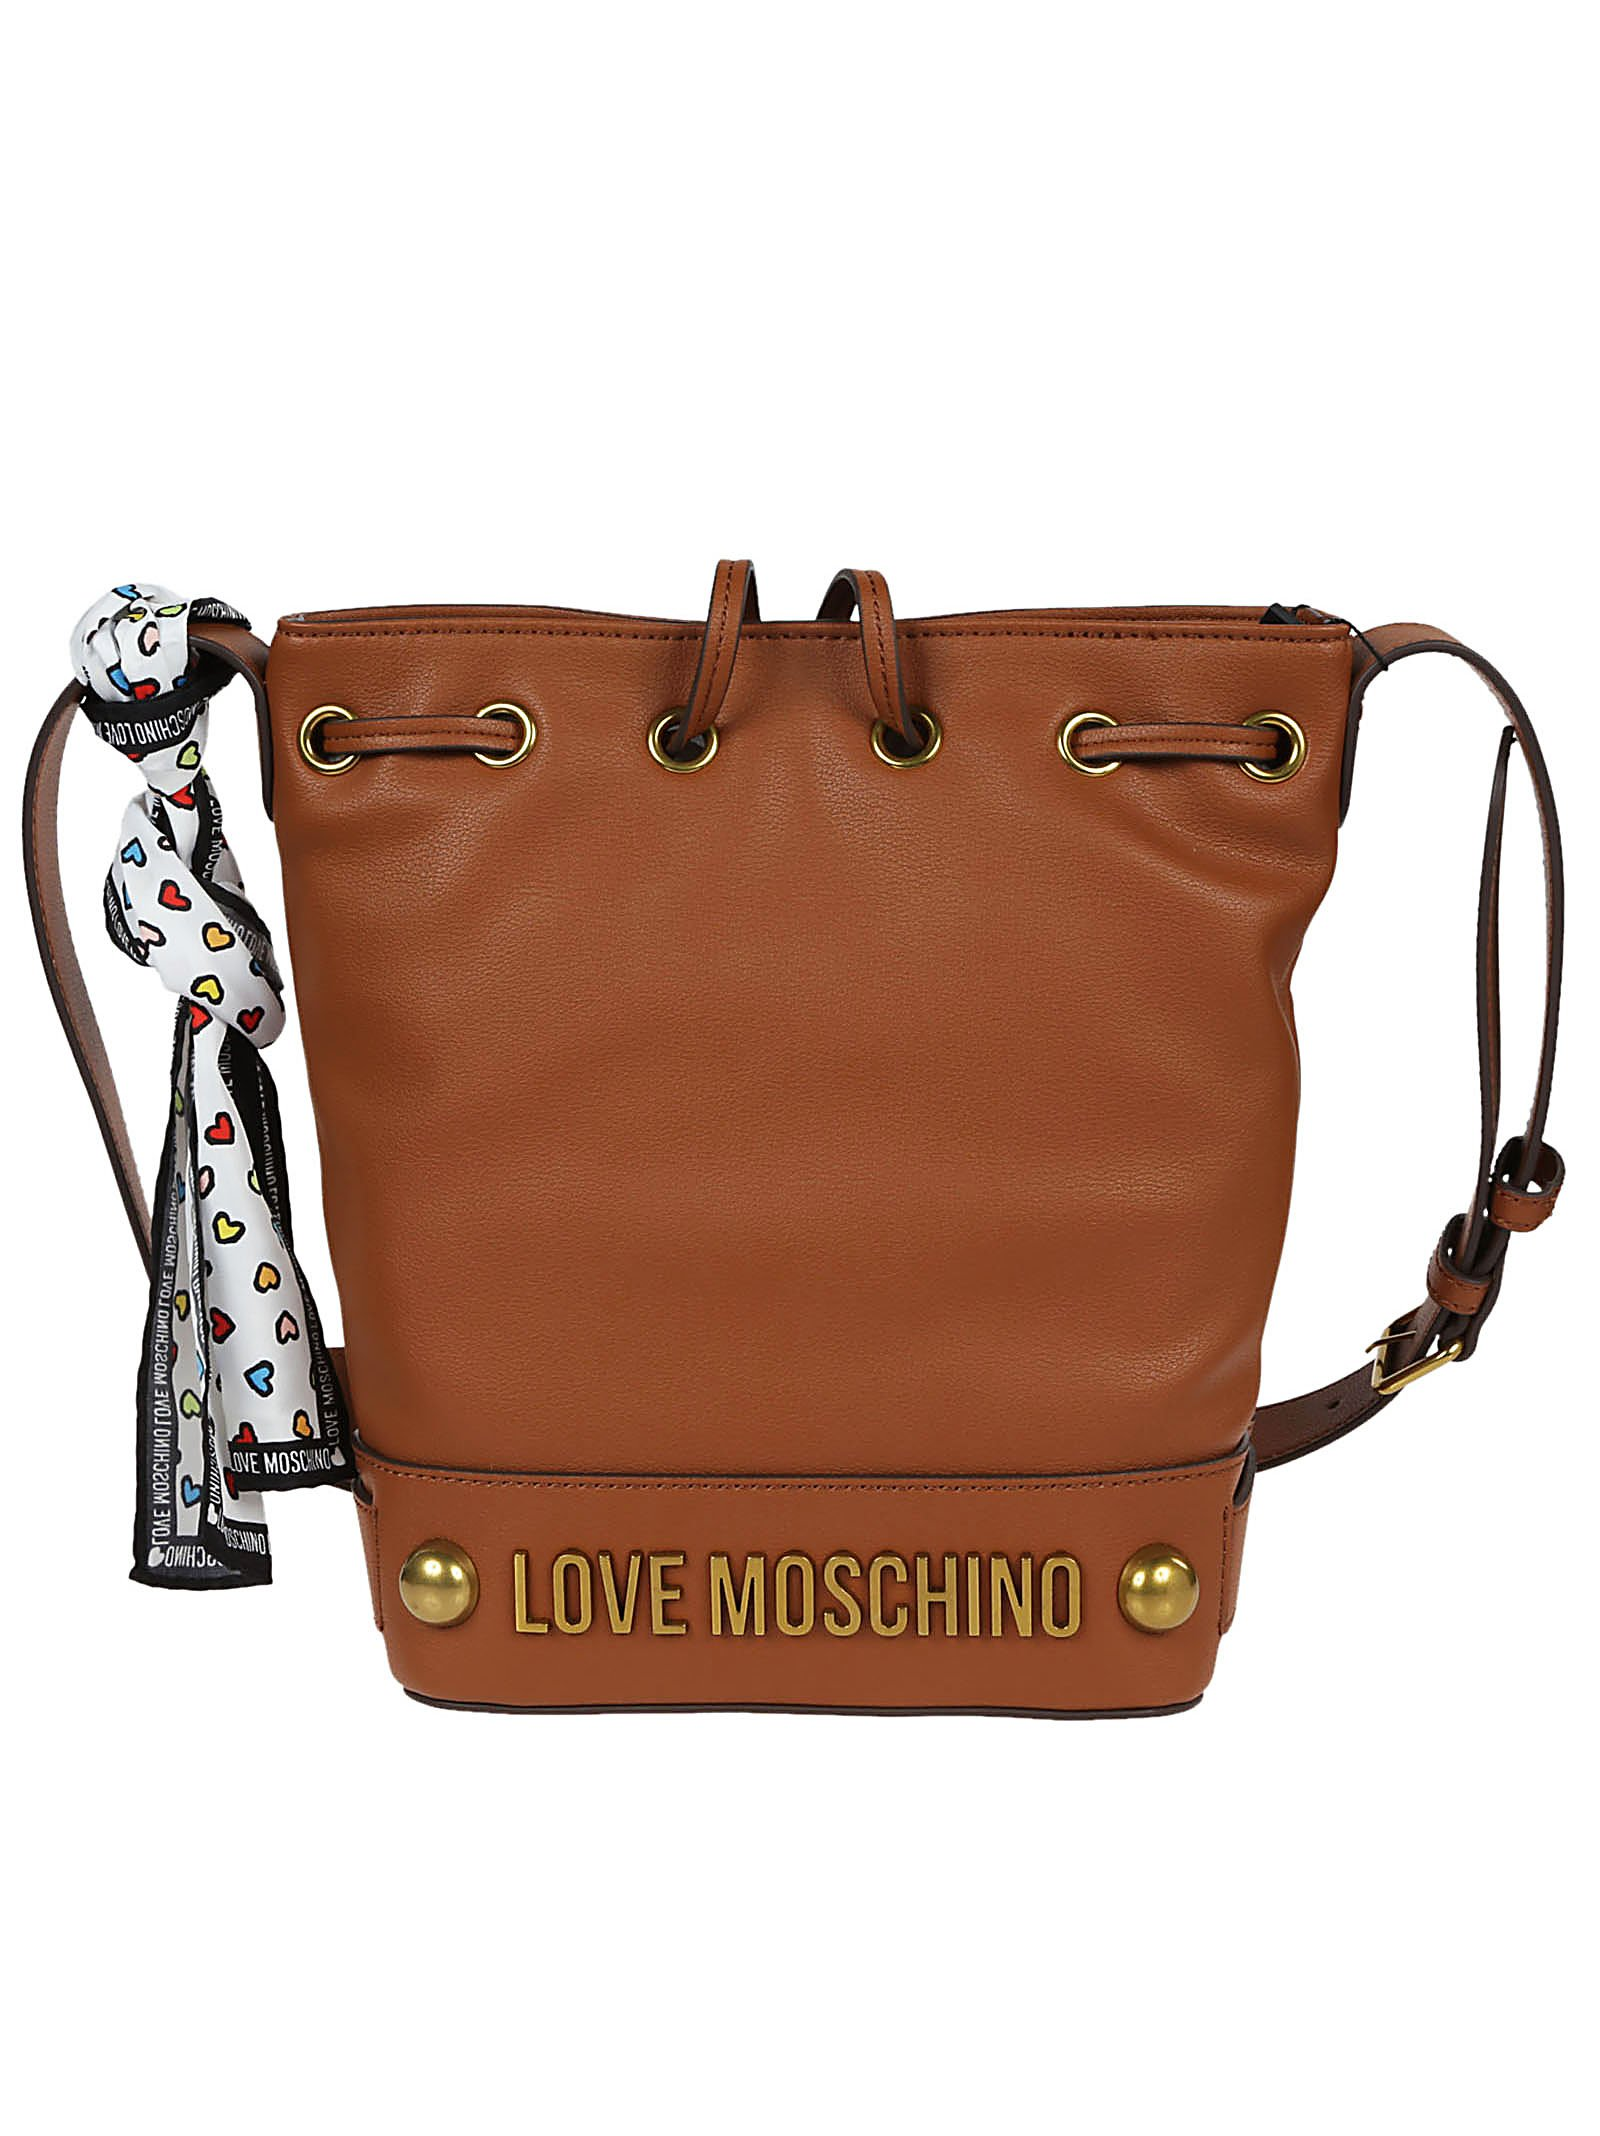 Love Moschino Women's Jc4349pp05k60200 Brown Leather Shoulder Bag